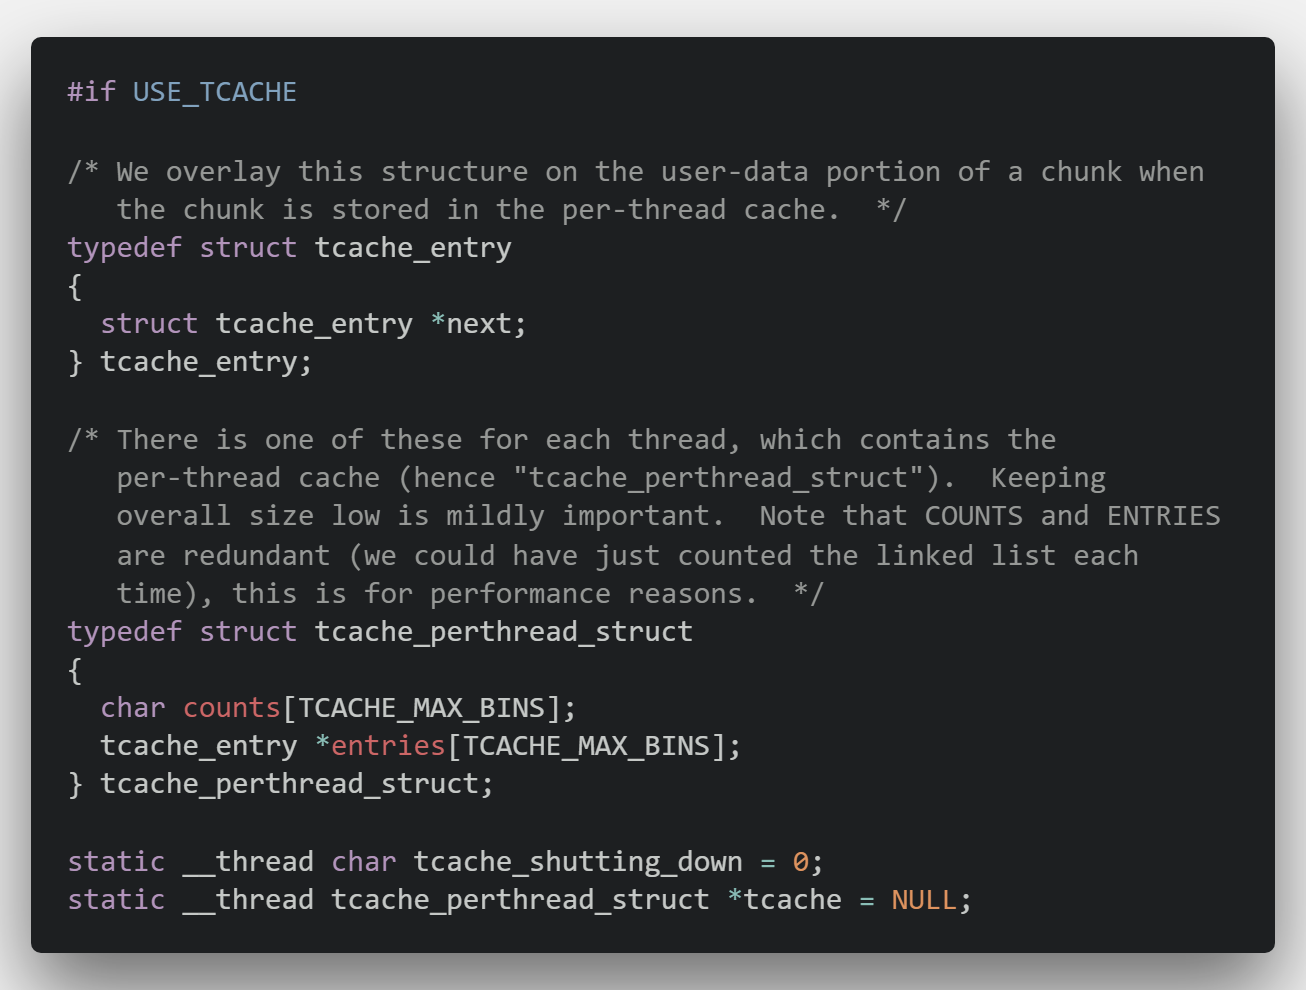 tcache_entry